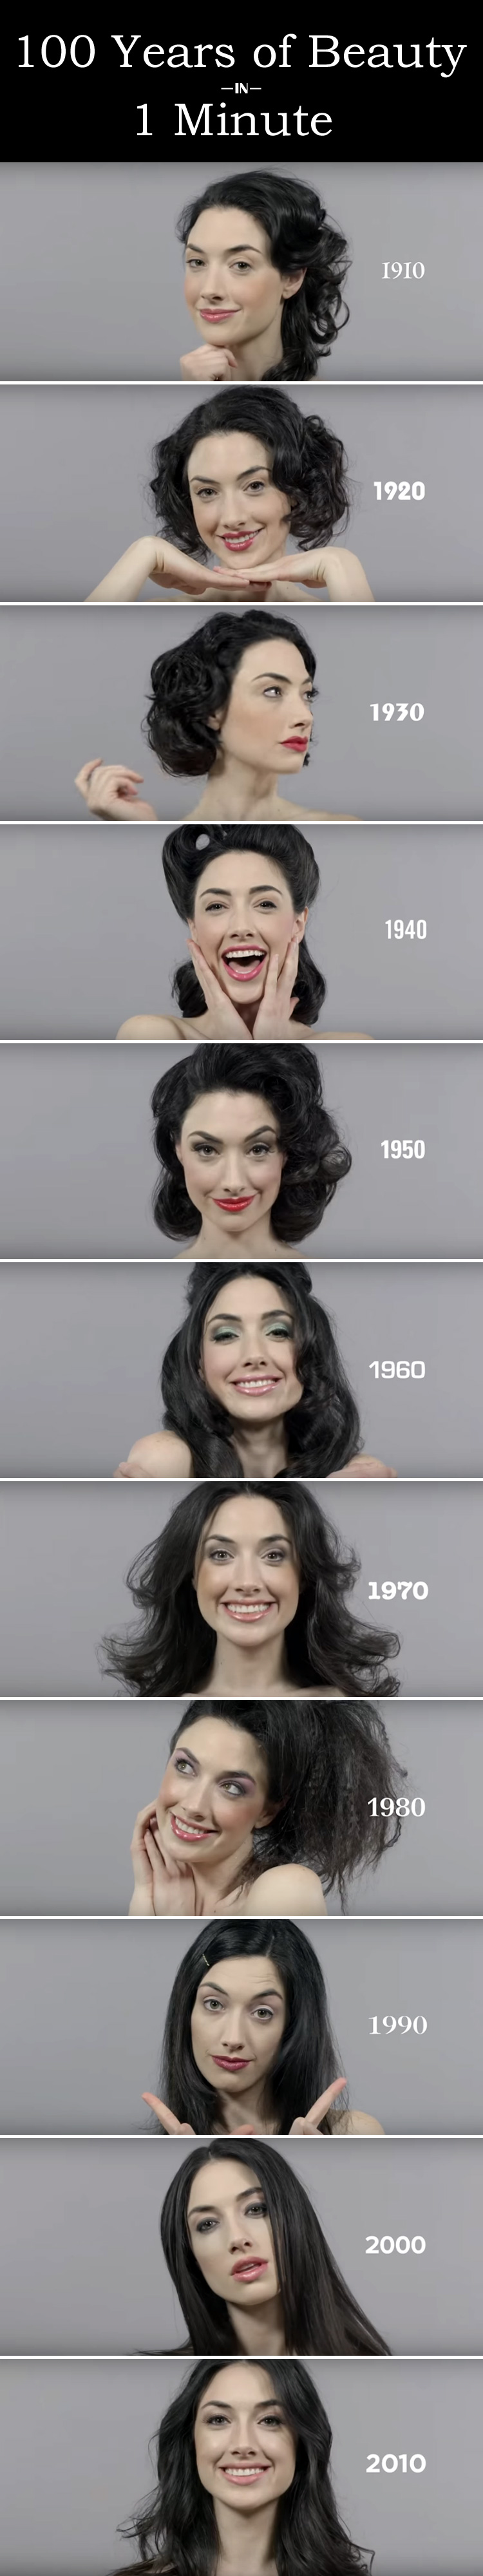 Watch 100 Years of Beauty Trends in Only 1 Minute